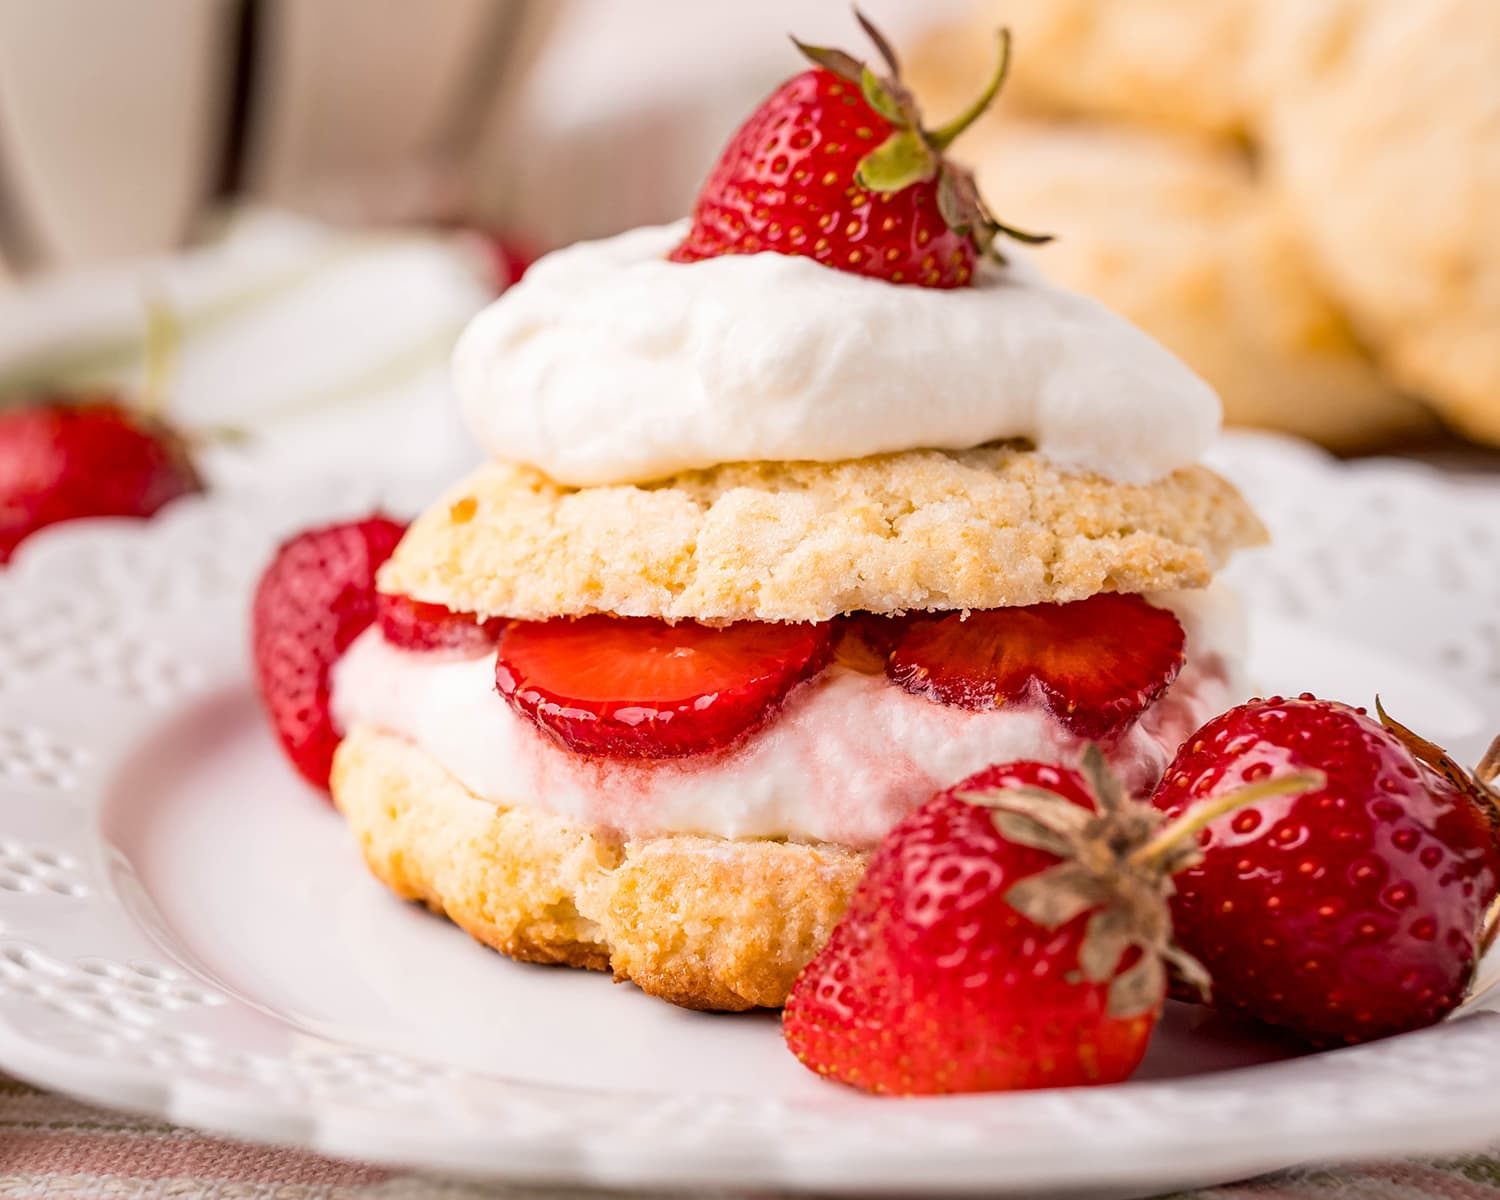 A strawberry shortcake on a plate, with a sweet biscuit, whipped cream, and strawberries.